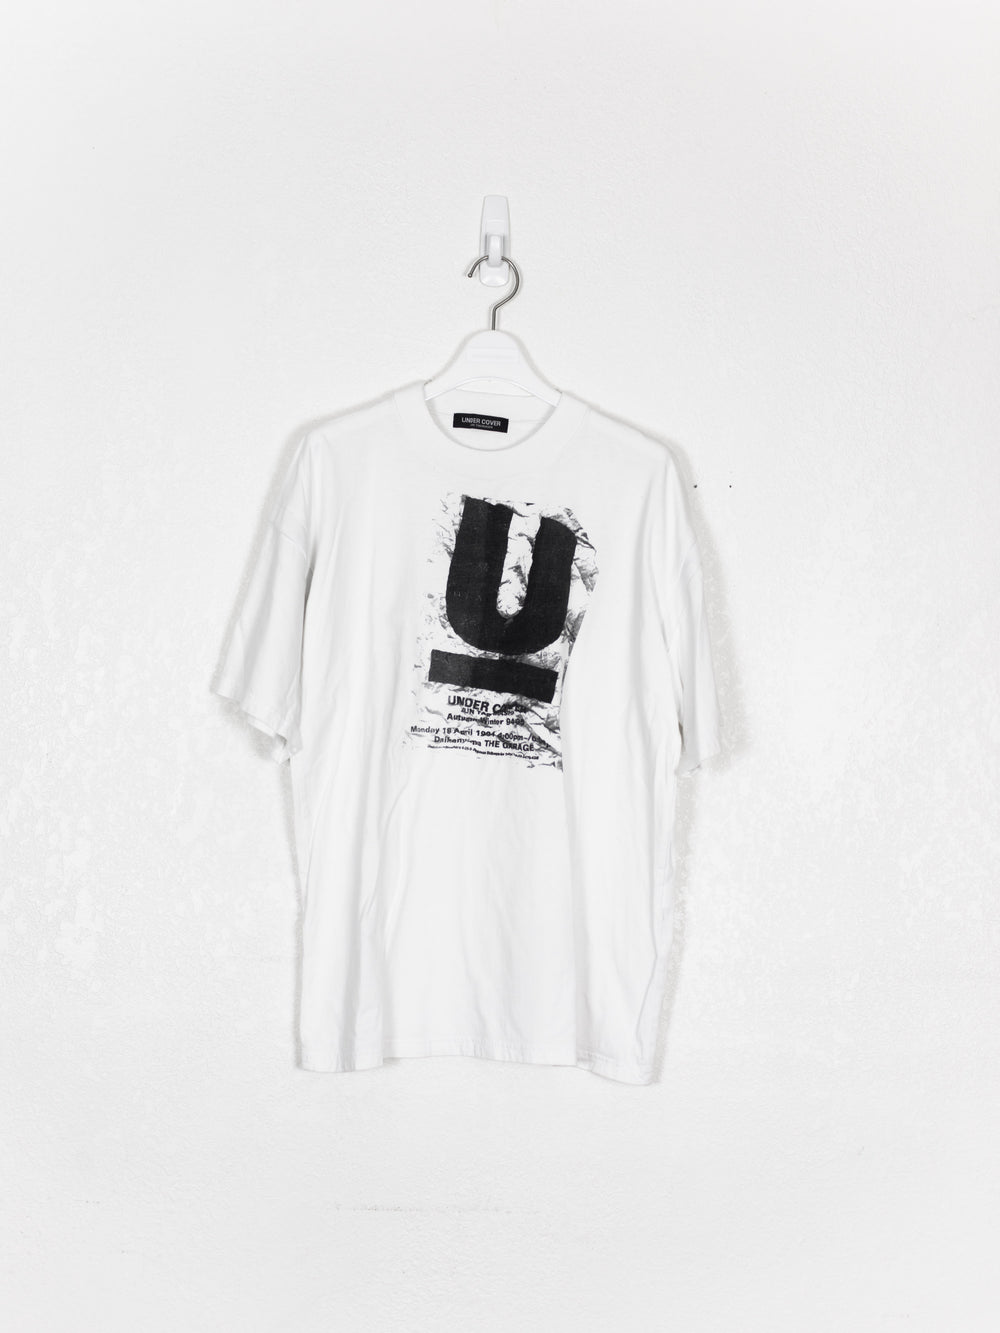 Undercover AW94 Original First Show Tee